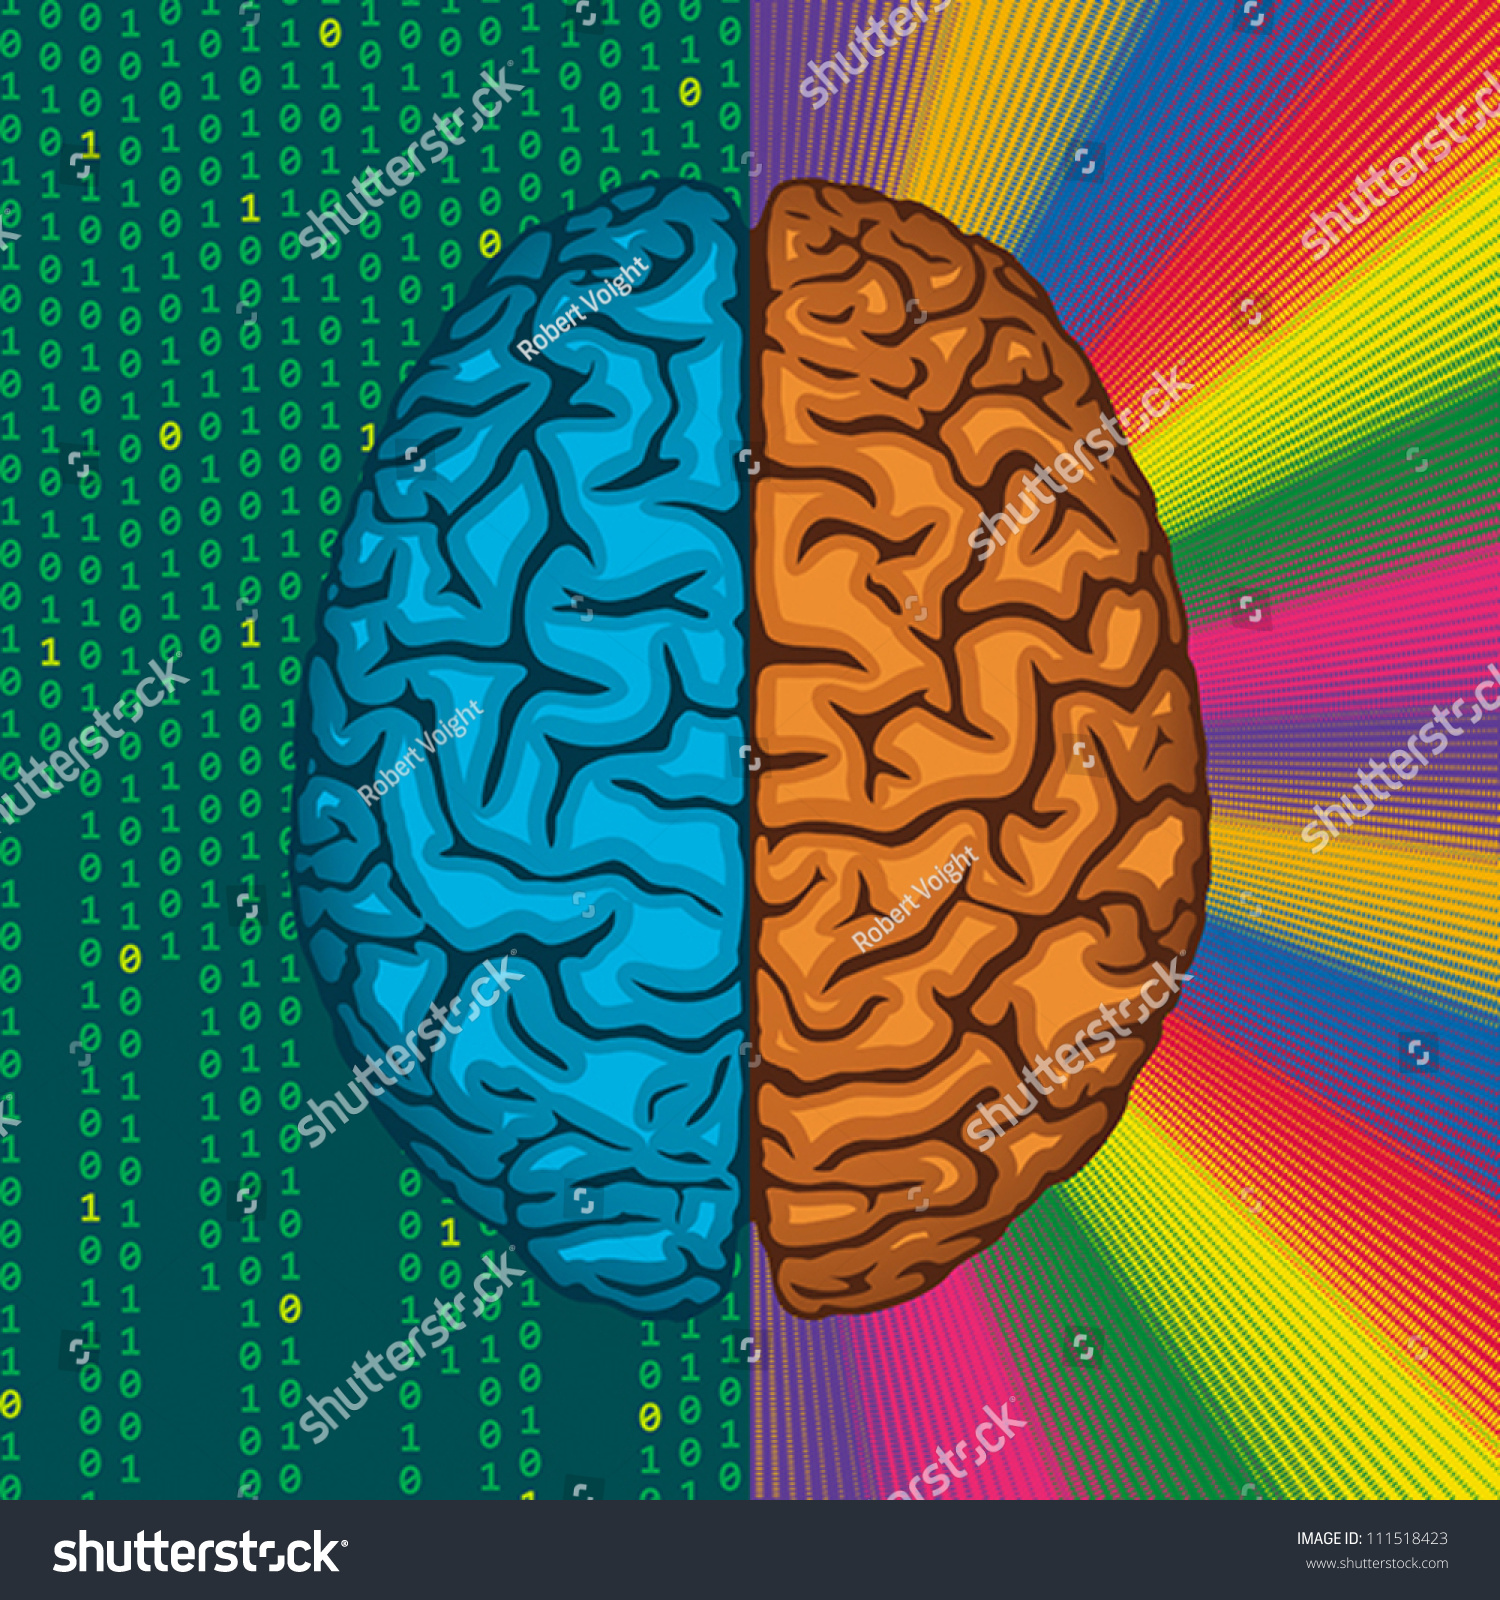 Differences Between Right Left Cerebral Hemispheres Stock Vector ...